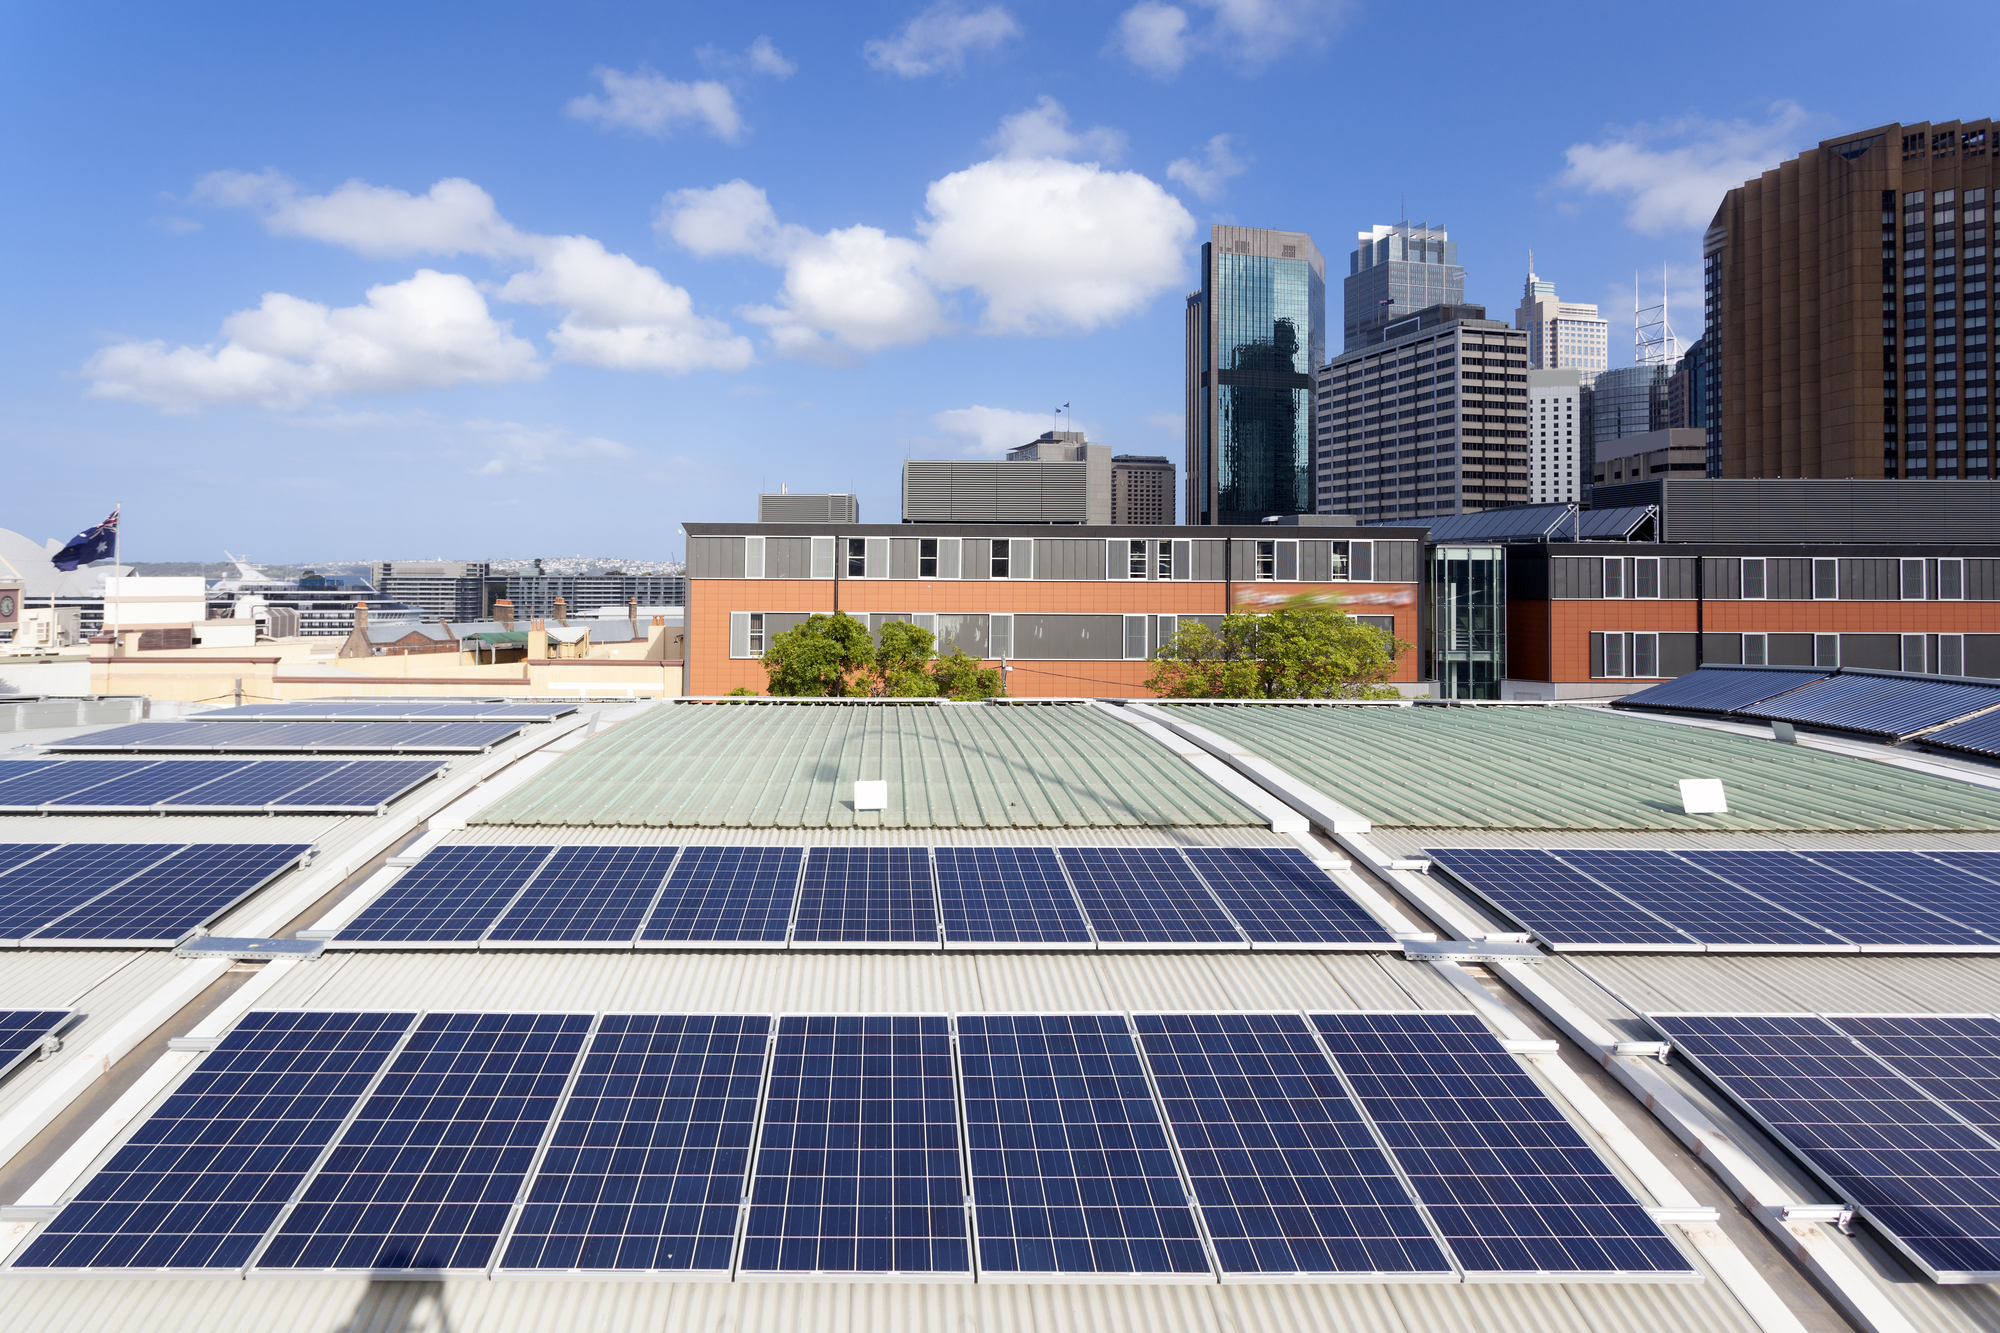 Commercial Solar Panels On Flat TPO Roof Improve Building Energy Efficiency